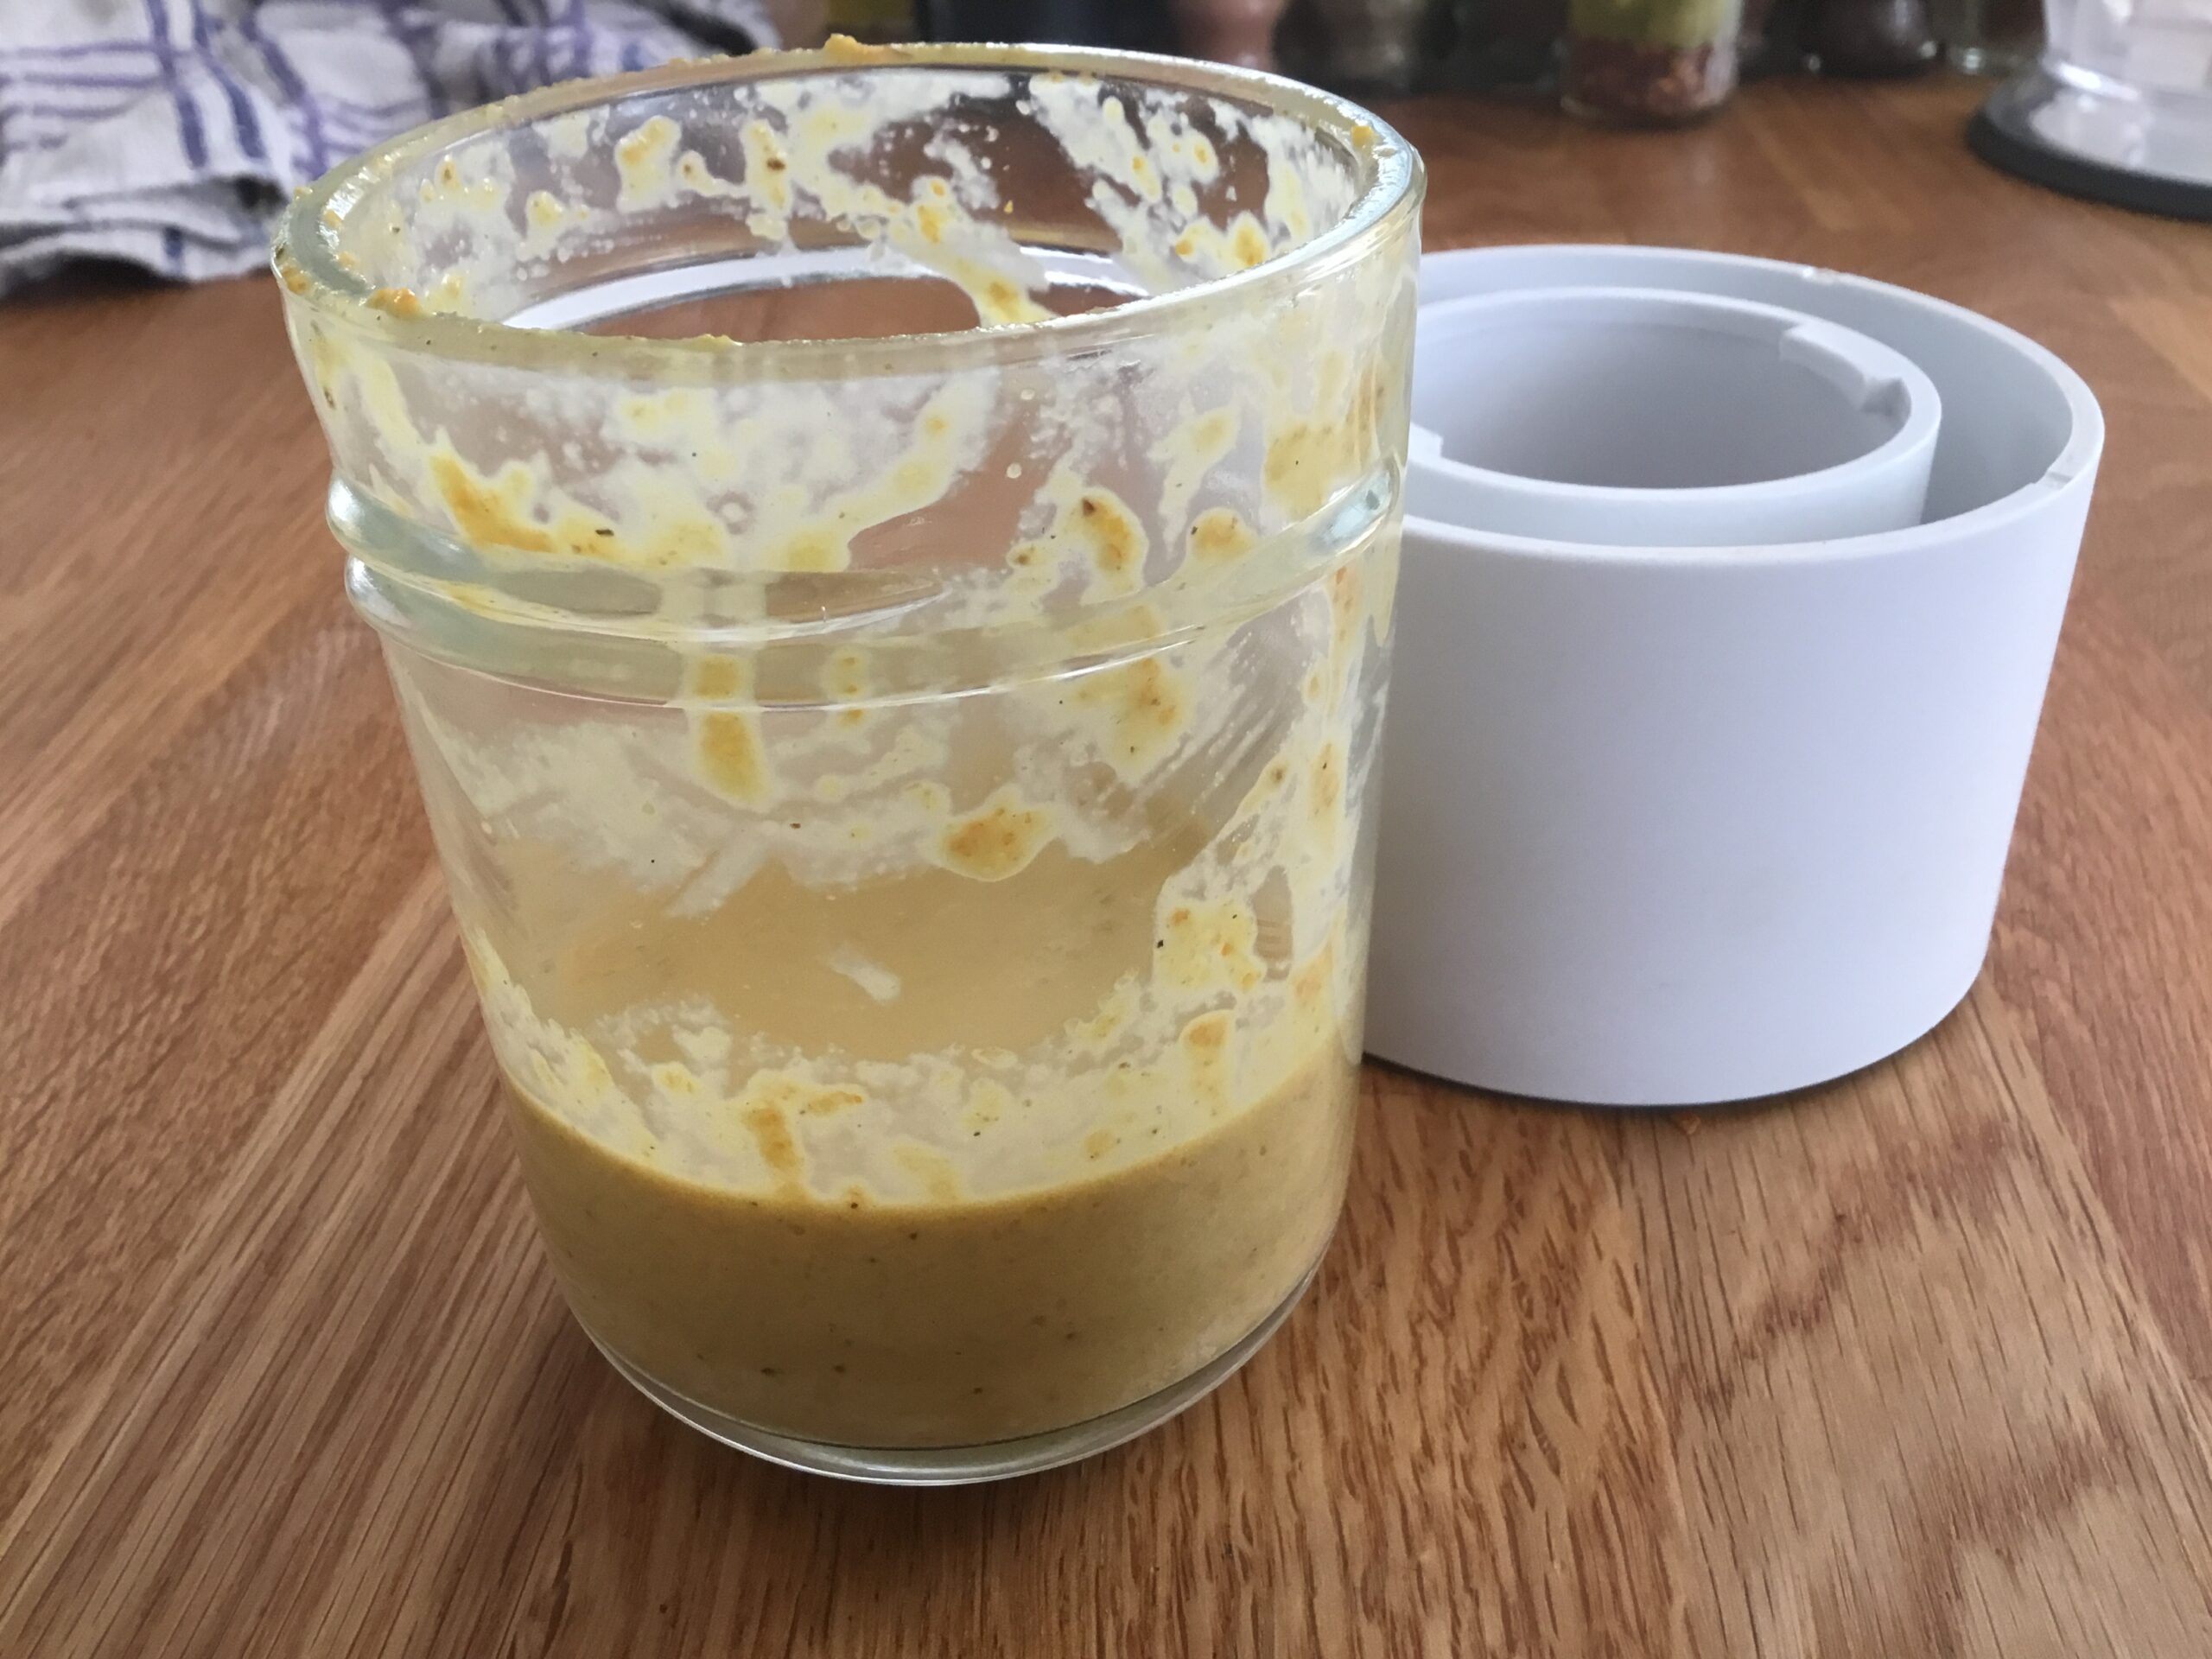 The citrus and spice mixture beaten together with butter